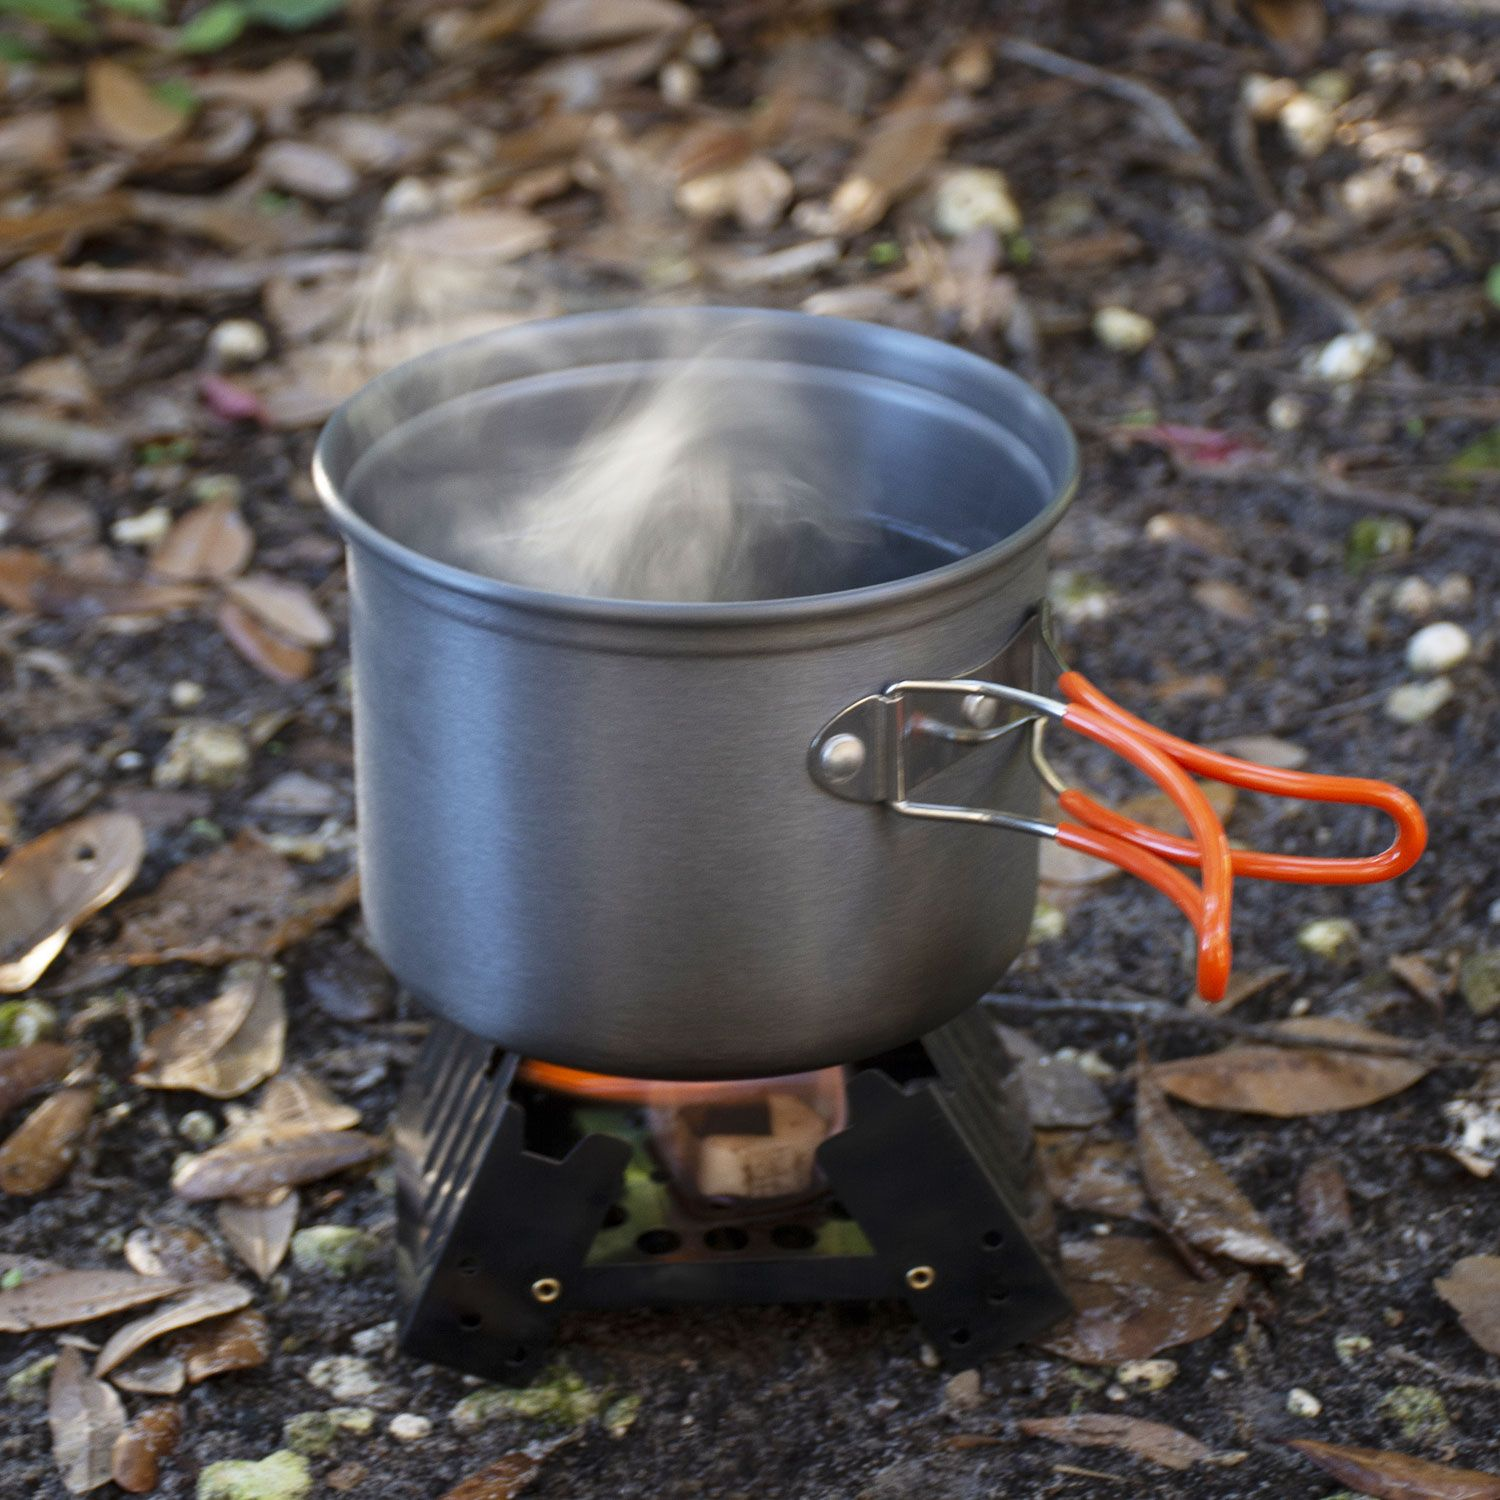 Ultimate Survival Technologies Duo Cook Kit 20-12563